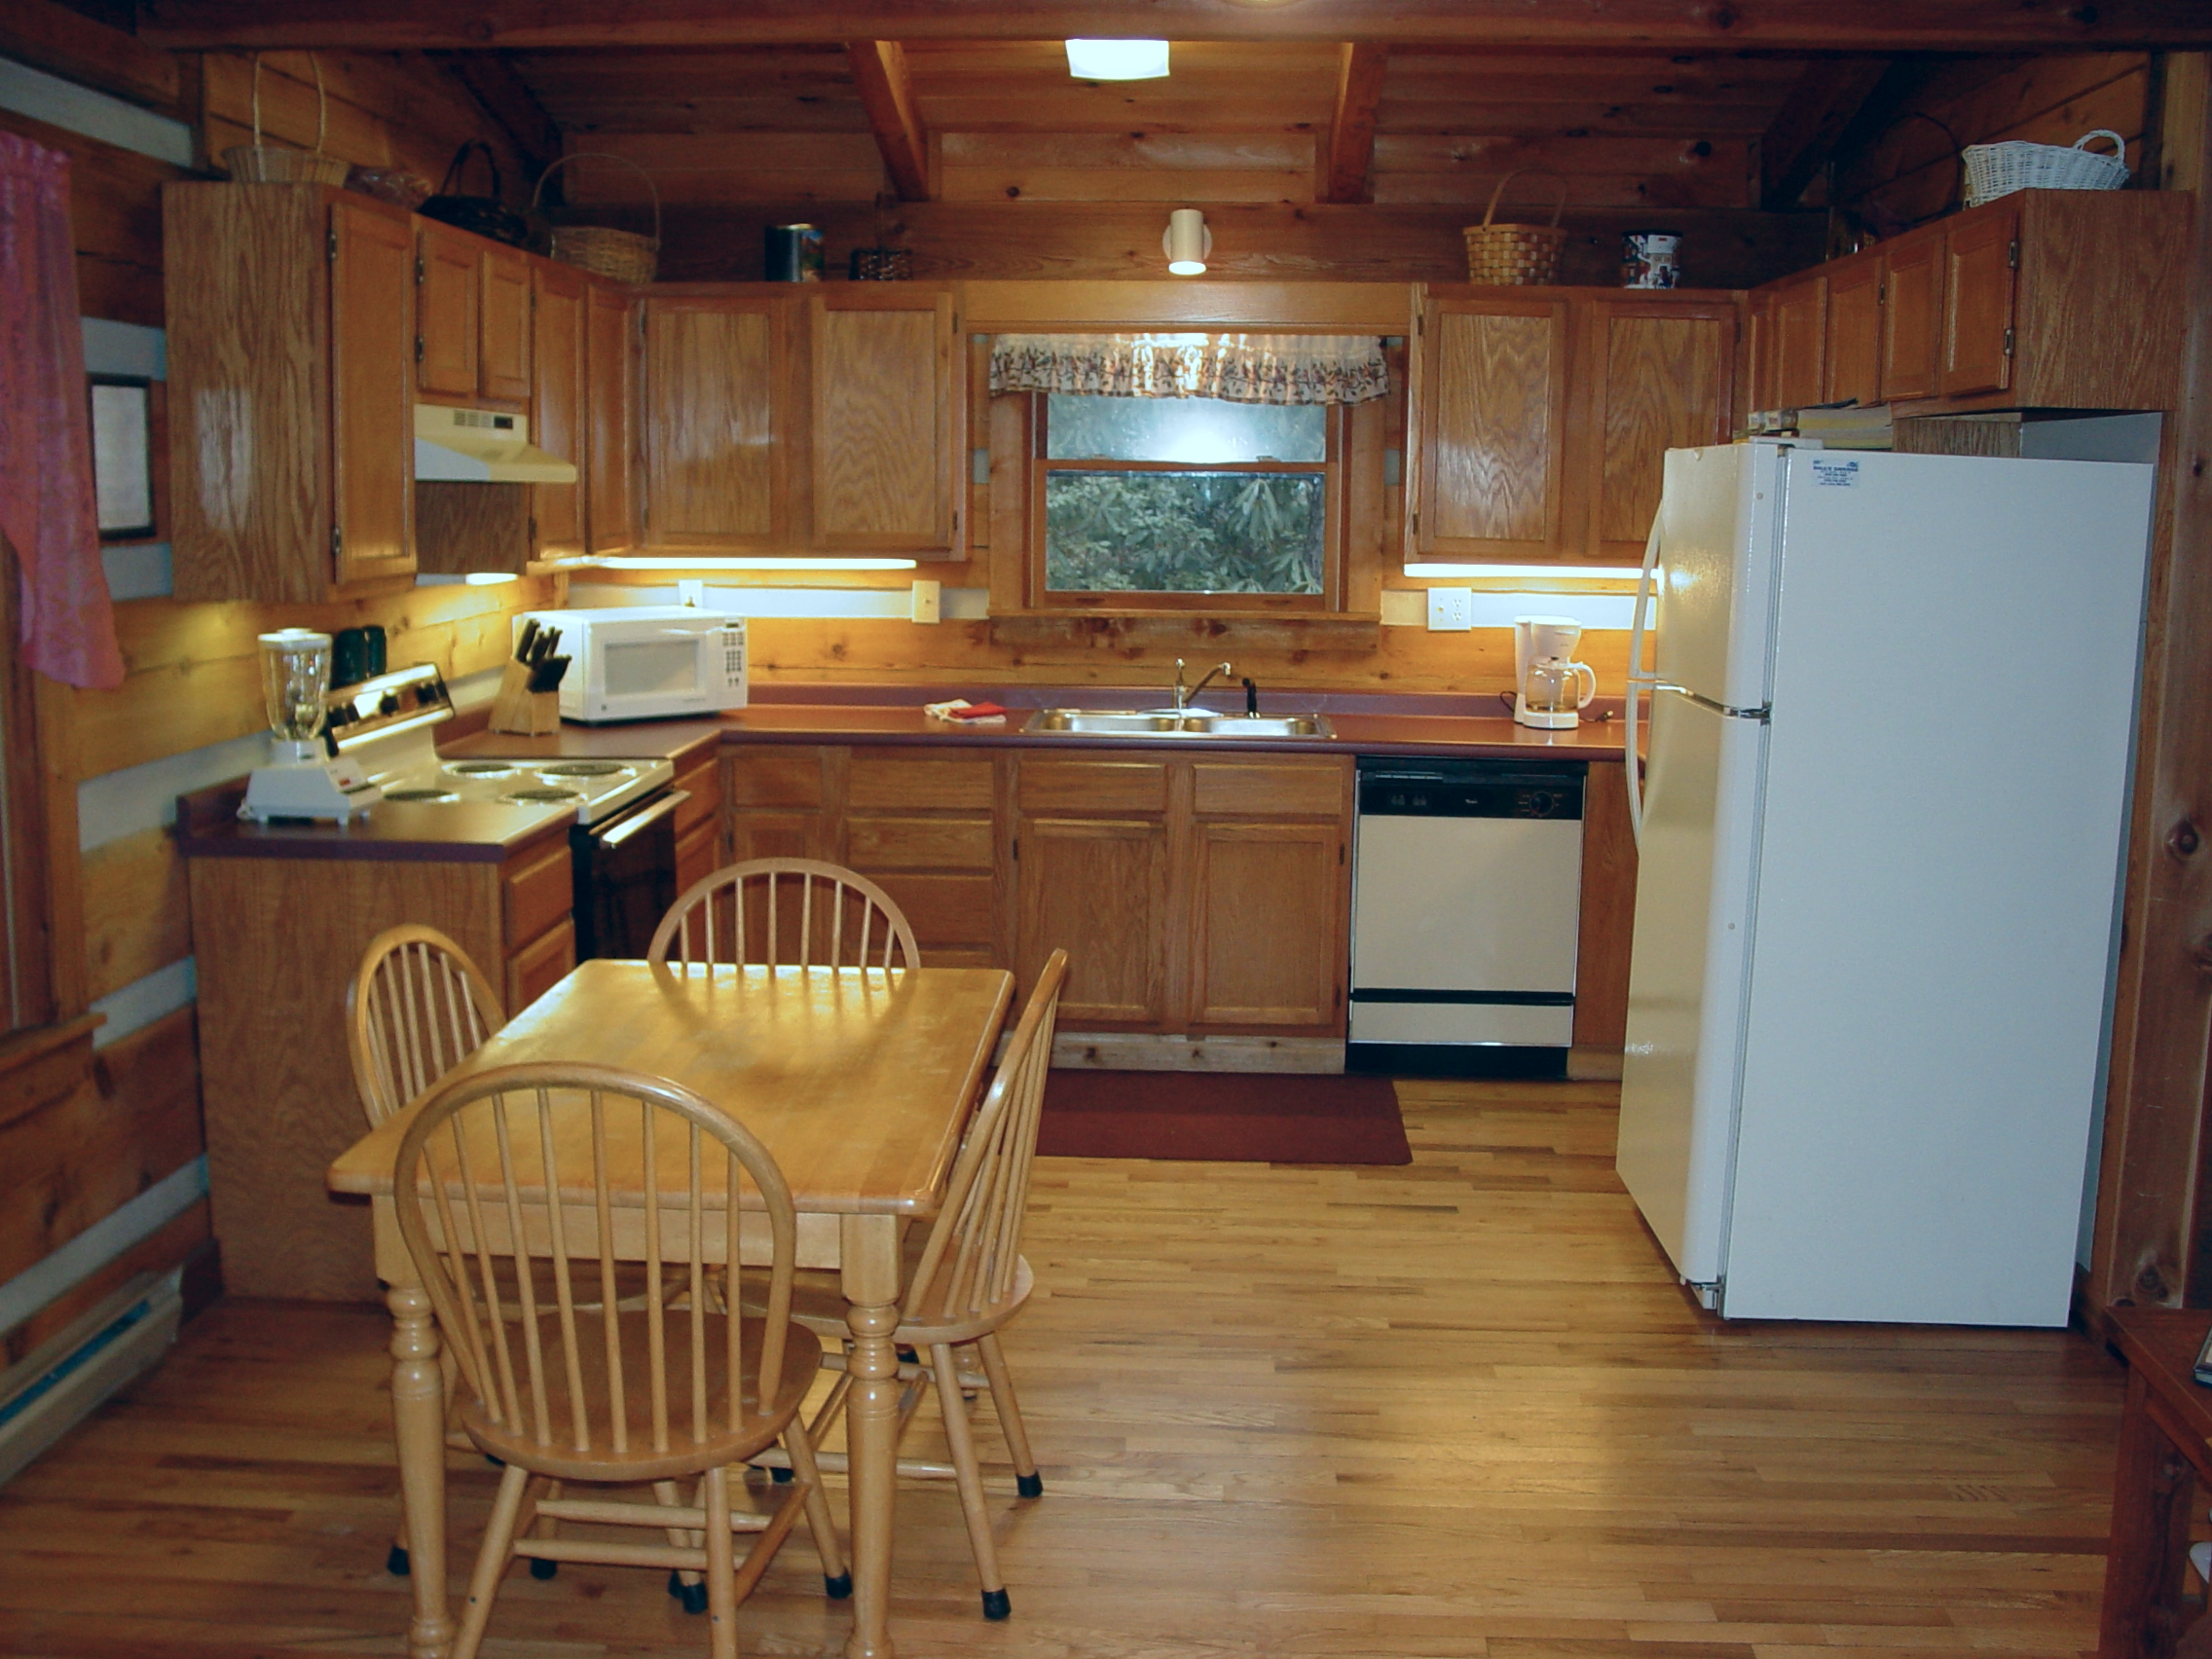 CO_Kitchen_Jan_11_010.jpg